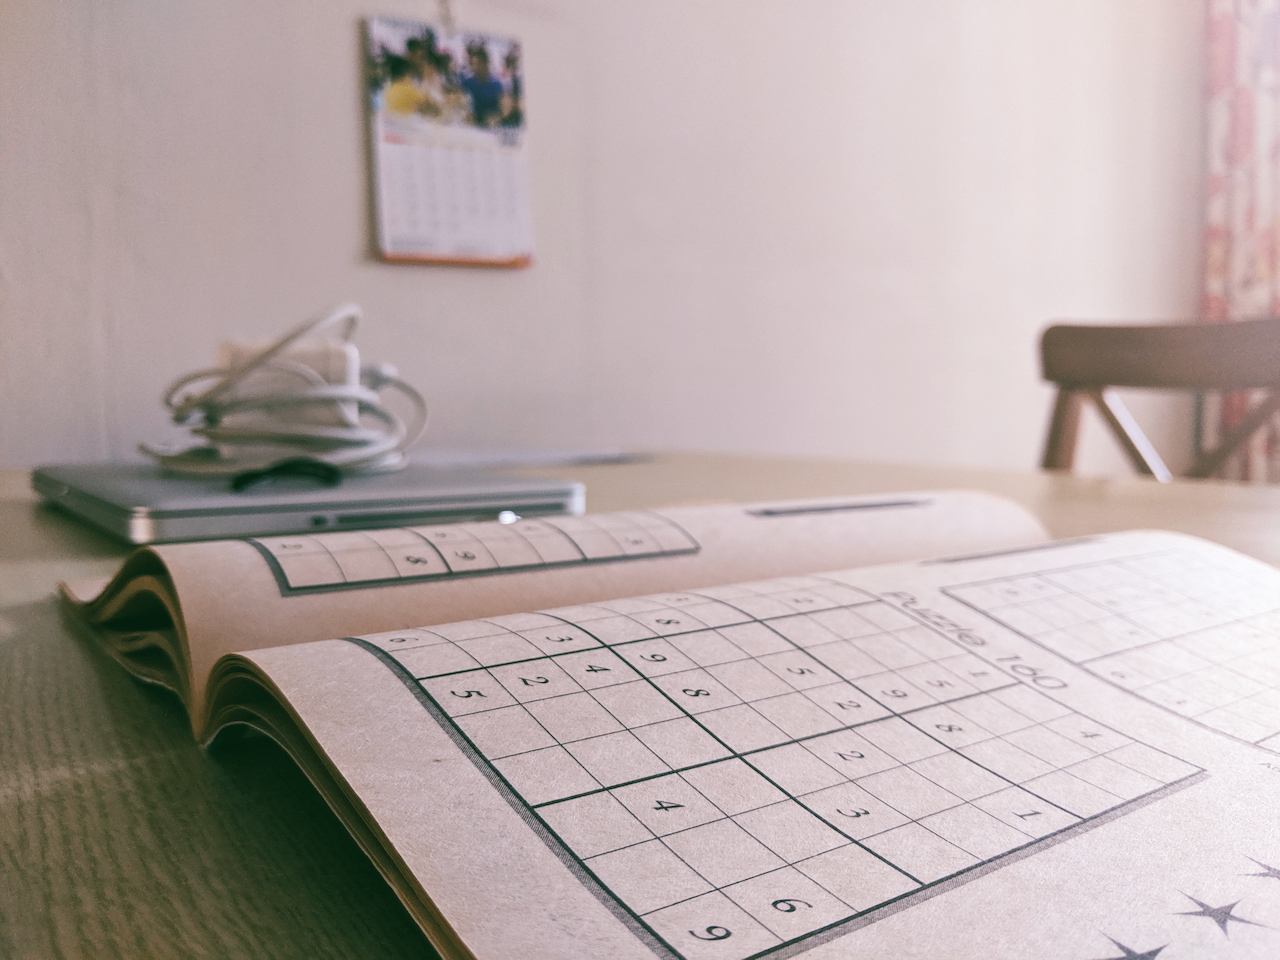 If School Made You HATE Math, Sudoku Will Teach You to Love It